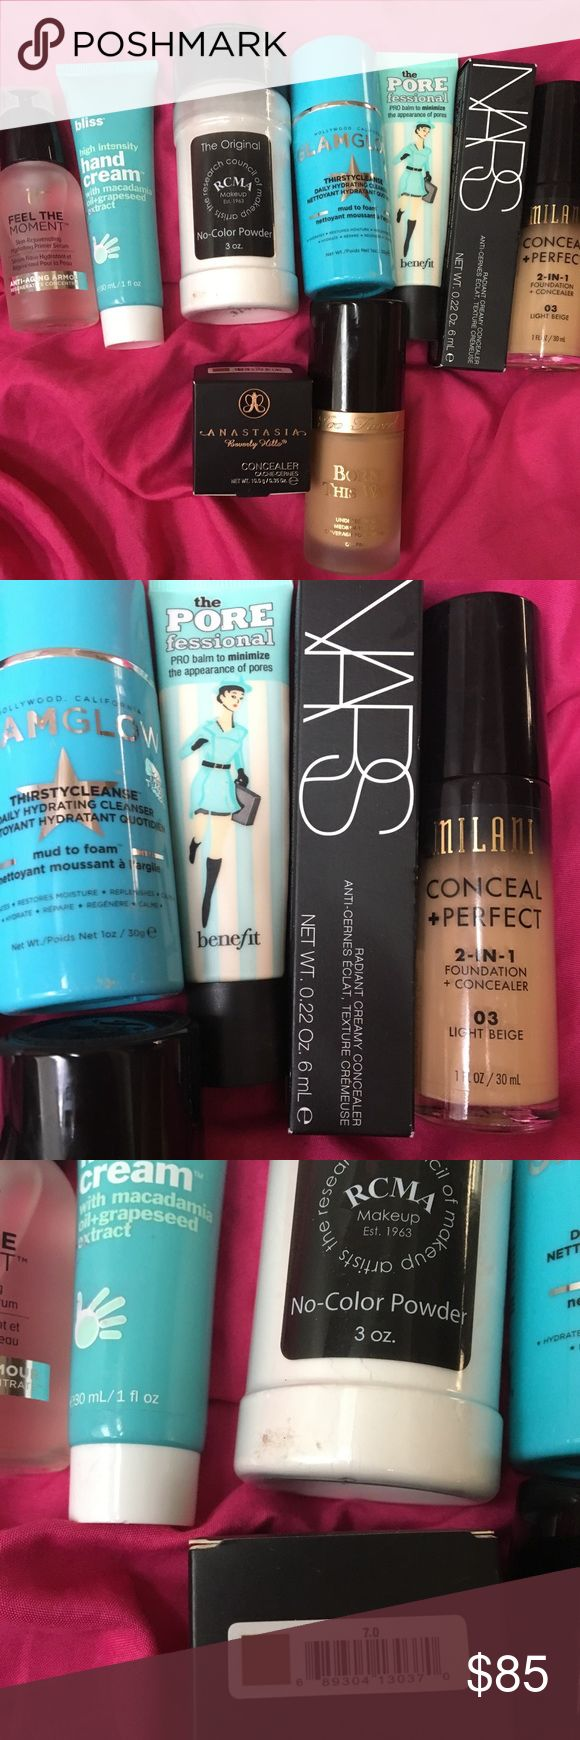 Makeup bundle. Willing to separate if needed. RCMA setting powder 85% of product left. Glamglow mud to foam cleanser 90% of product left. Benefit porefessional primer 75% of product left. Milani conceal and perfect foundation 85% left 03 light beige. Born this way foundation in light beige 85% left(still have the box) . ABH and NARS concealer in another post. It cosmetics primer used once. Bliss hand cream used once. Sephora Makeup